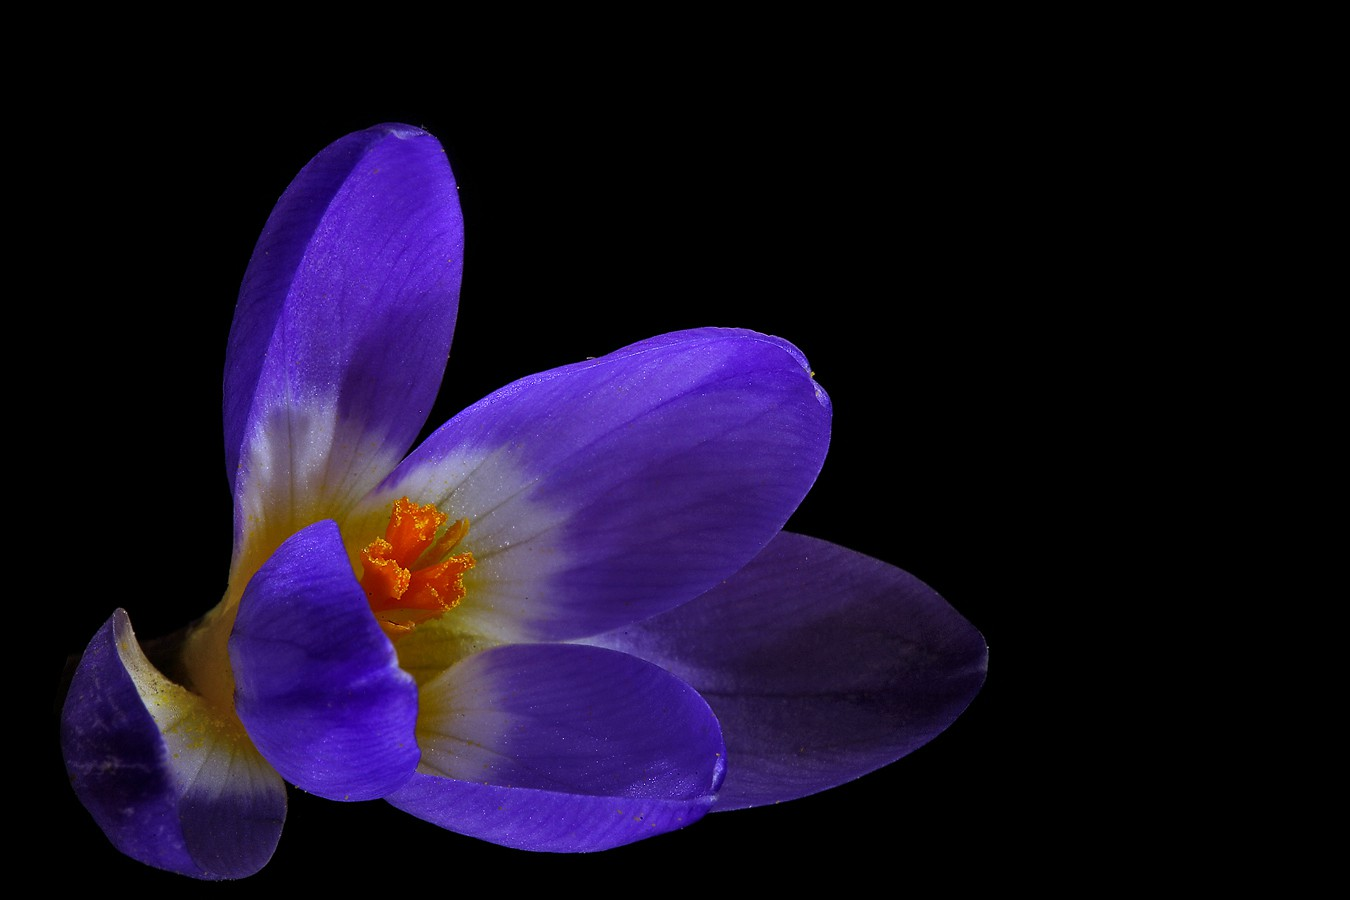 old crocus img aw author sava gregory and verena